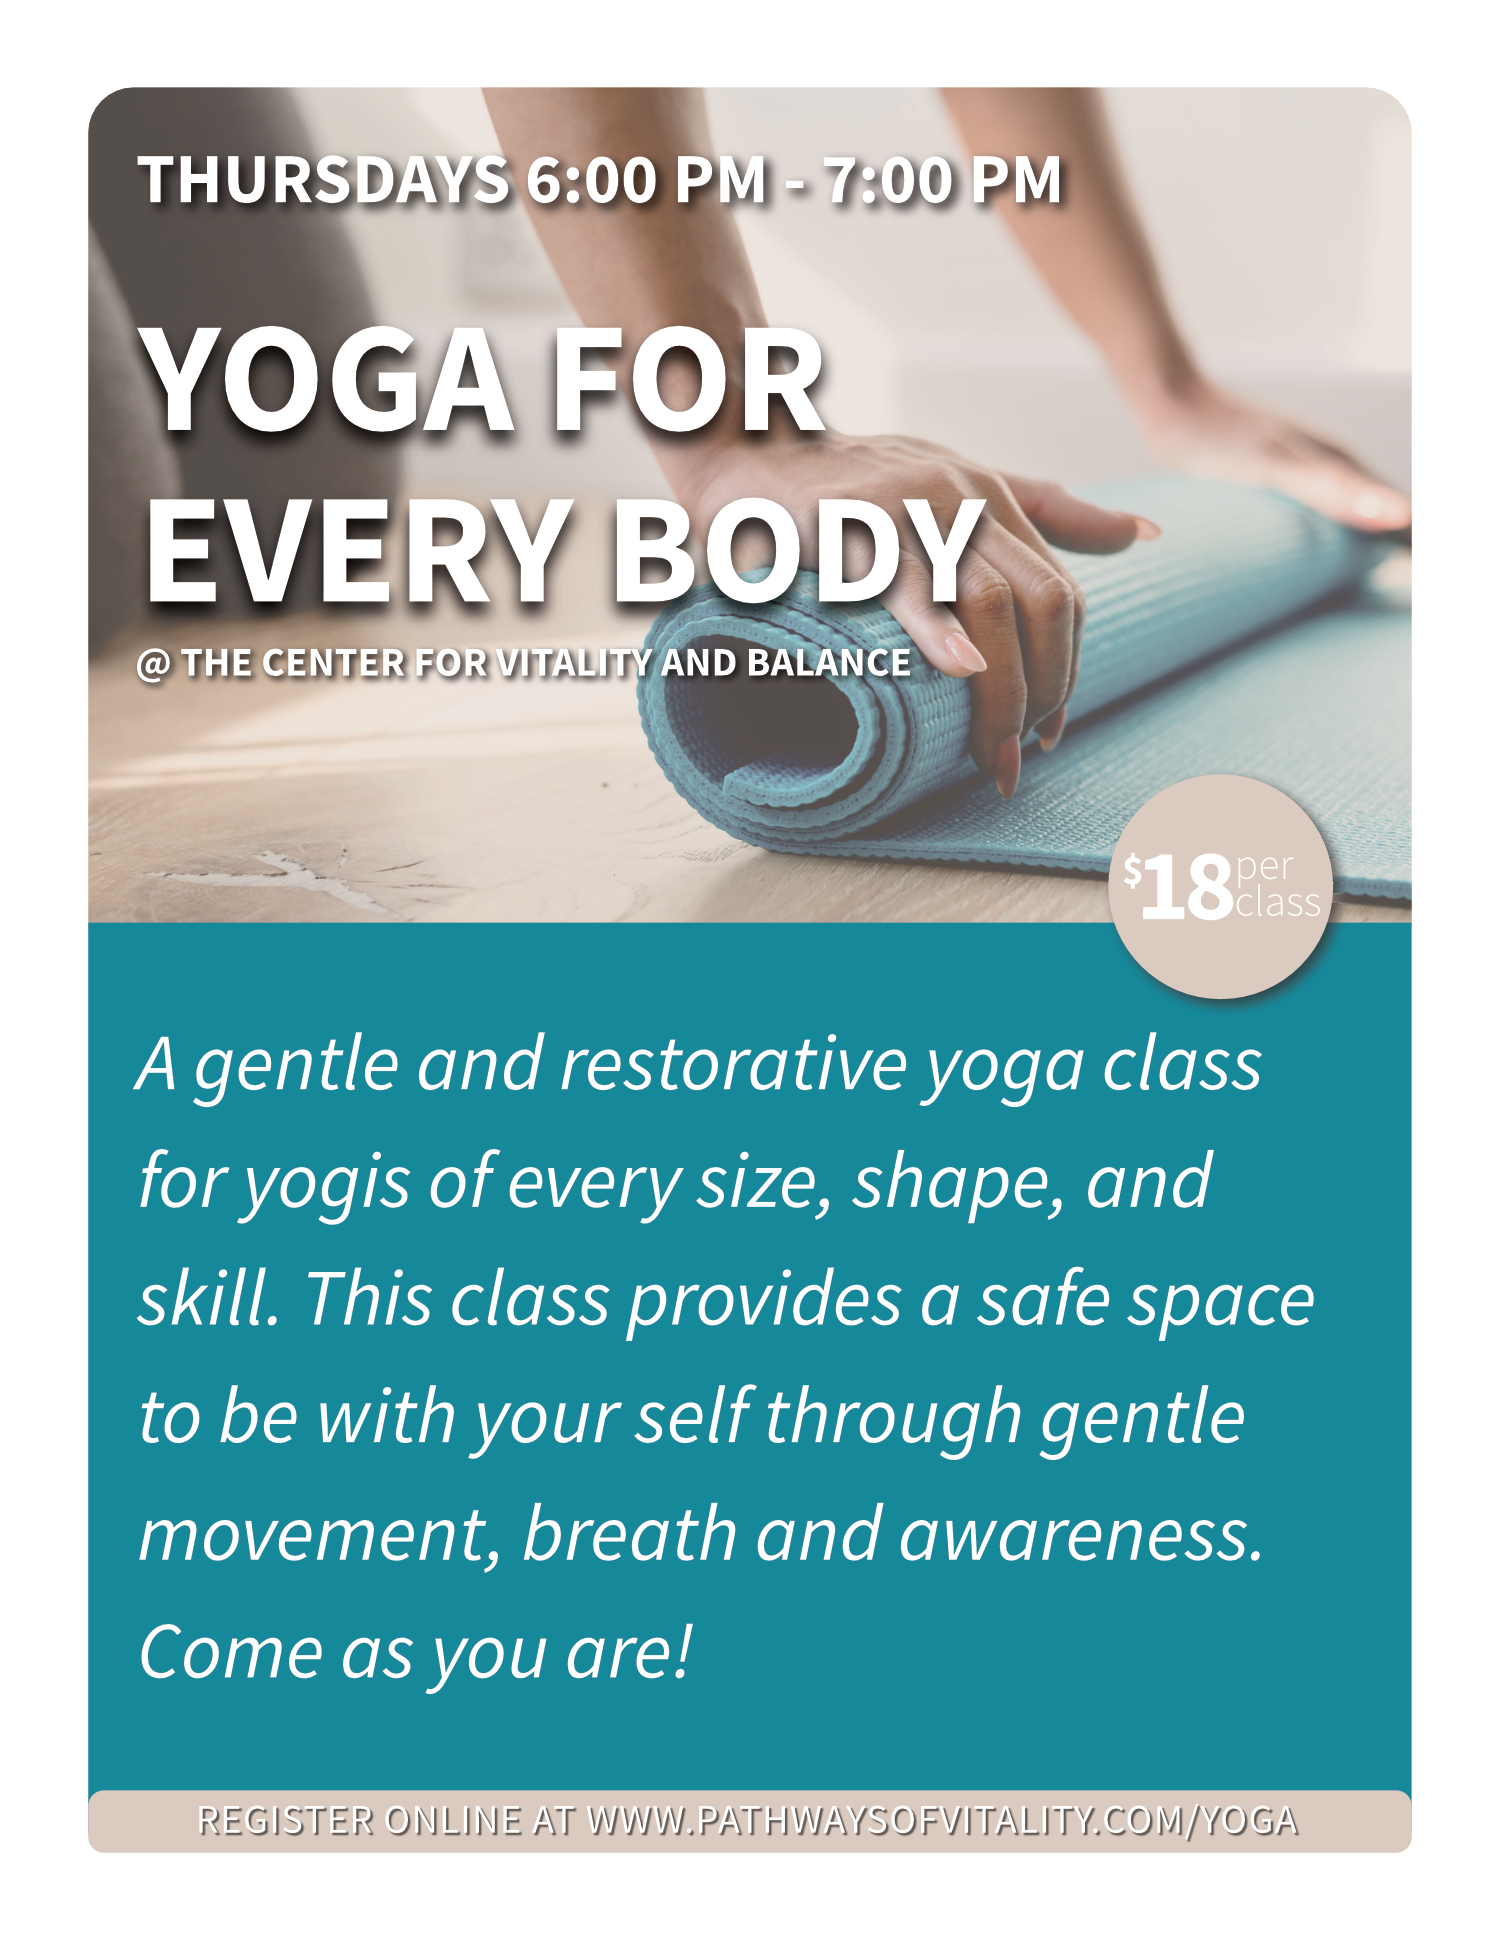 Yoga for Every Body at the Center for Vitality and  Balance